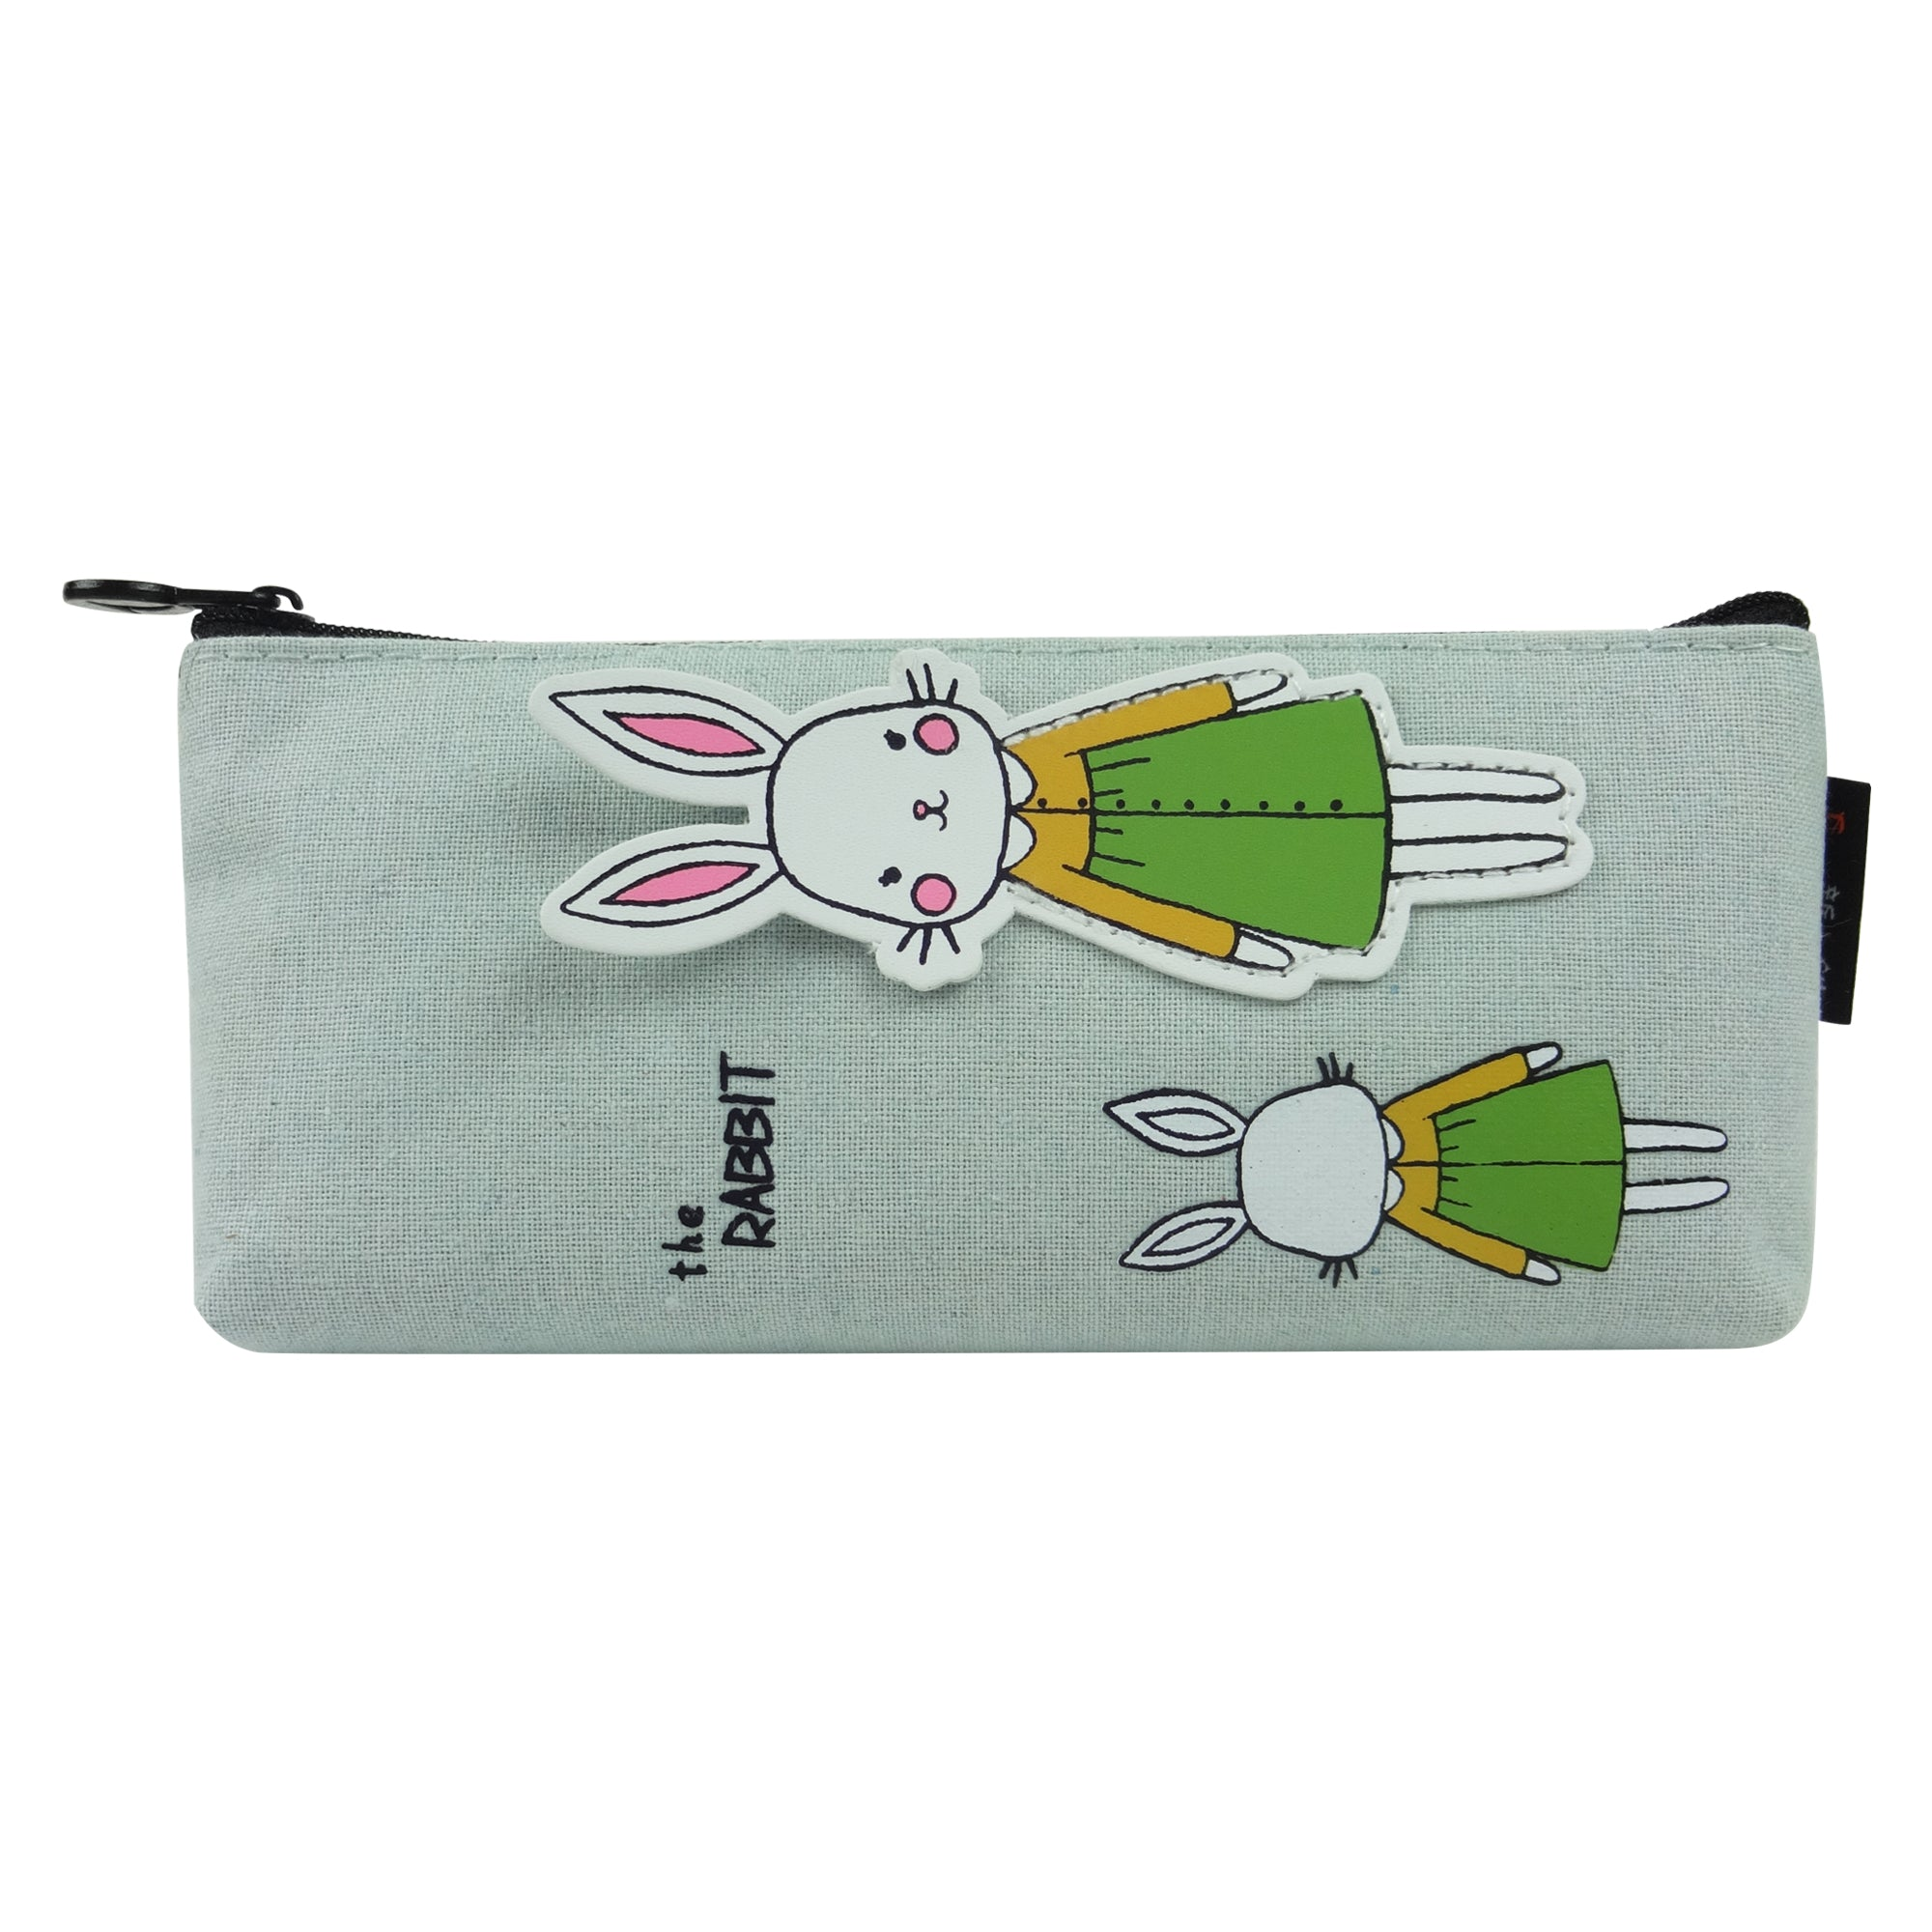 Fabric Pencil Case - Mamma Baby Rabbit Green